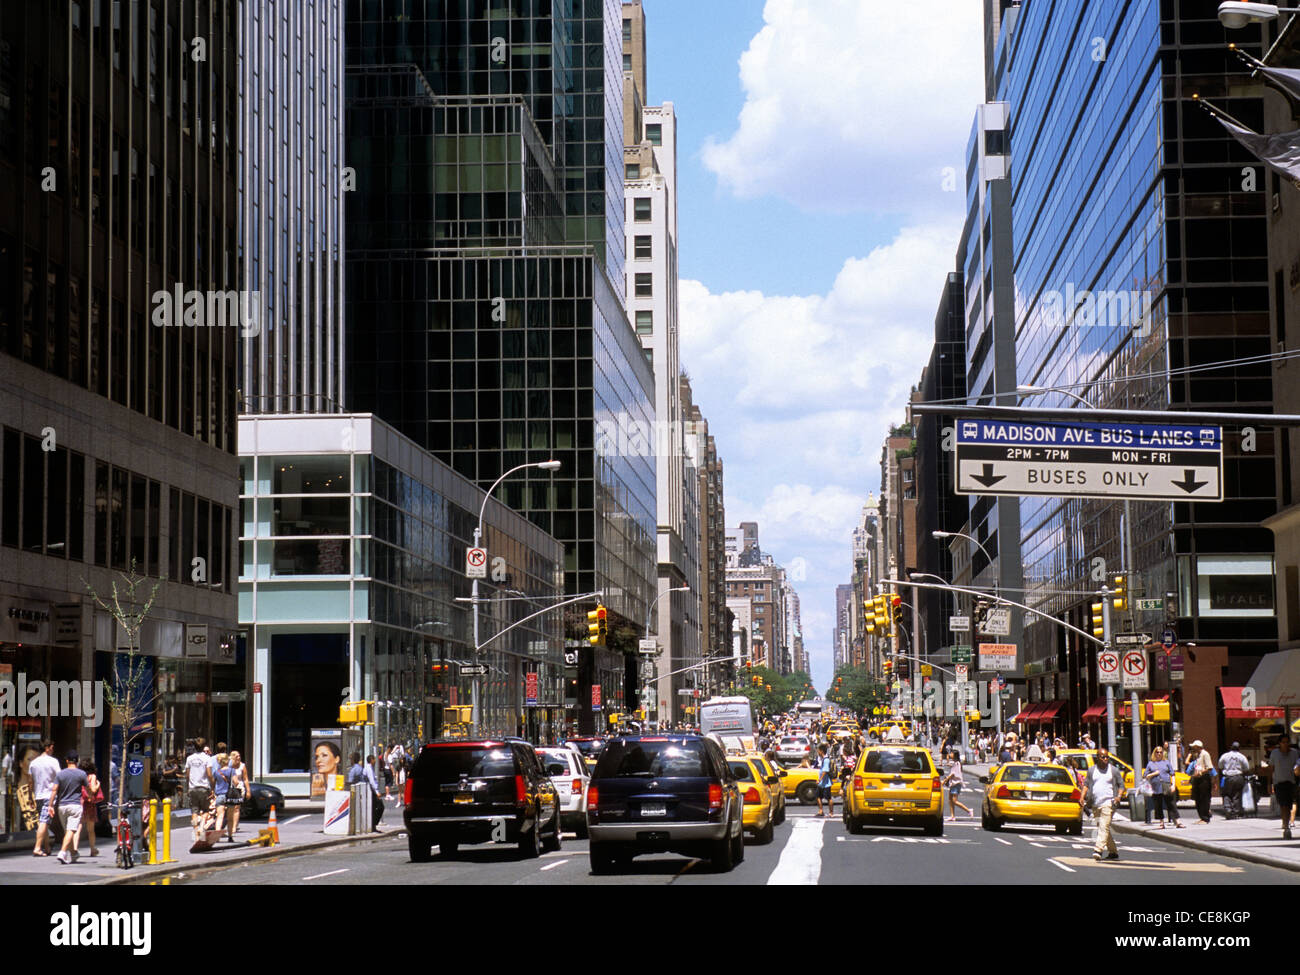 new york city madison avenue midtown manhattan traffic and people stock photo 43216902 alamy. Black Bedroom Furniture Sets. Home Design Ideas